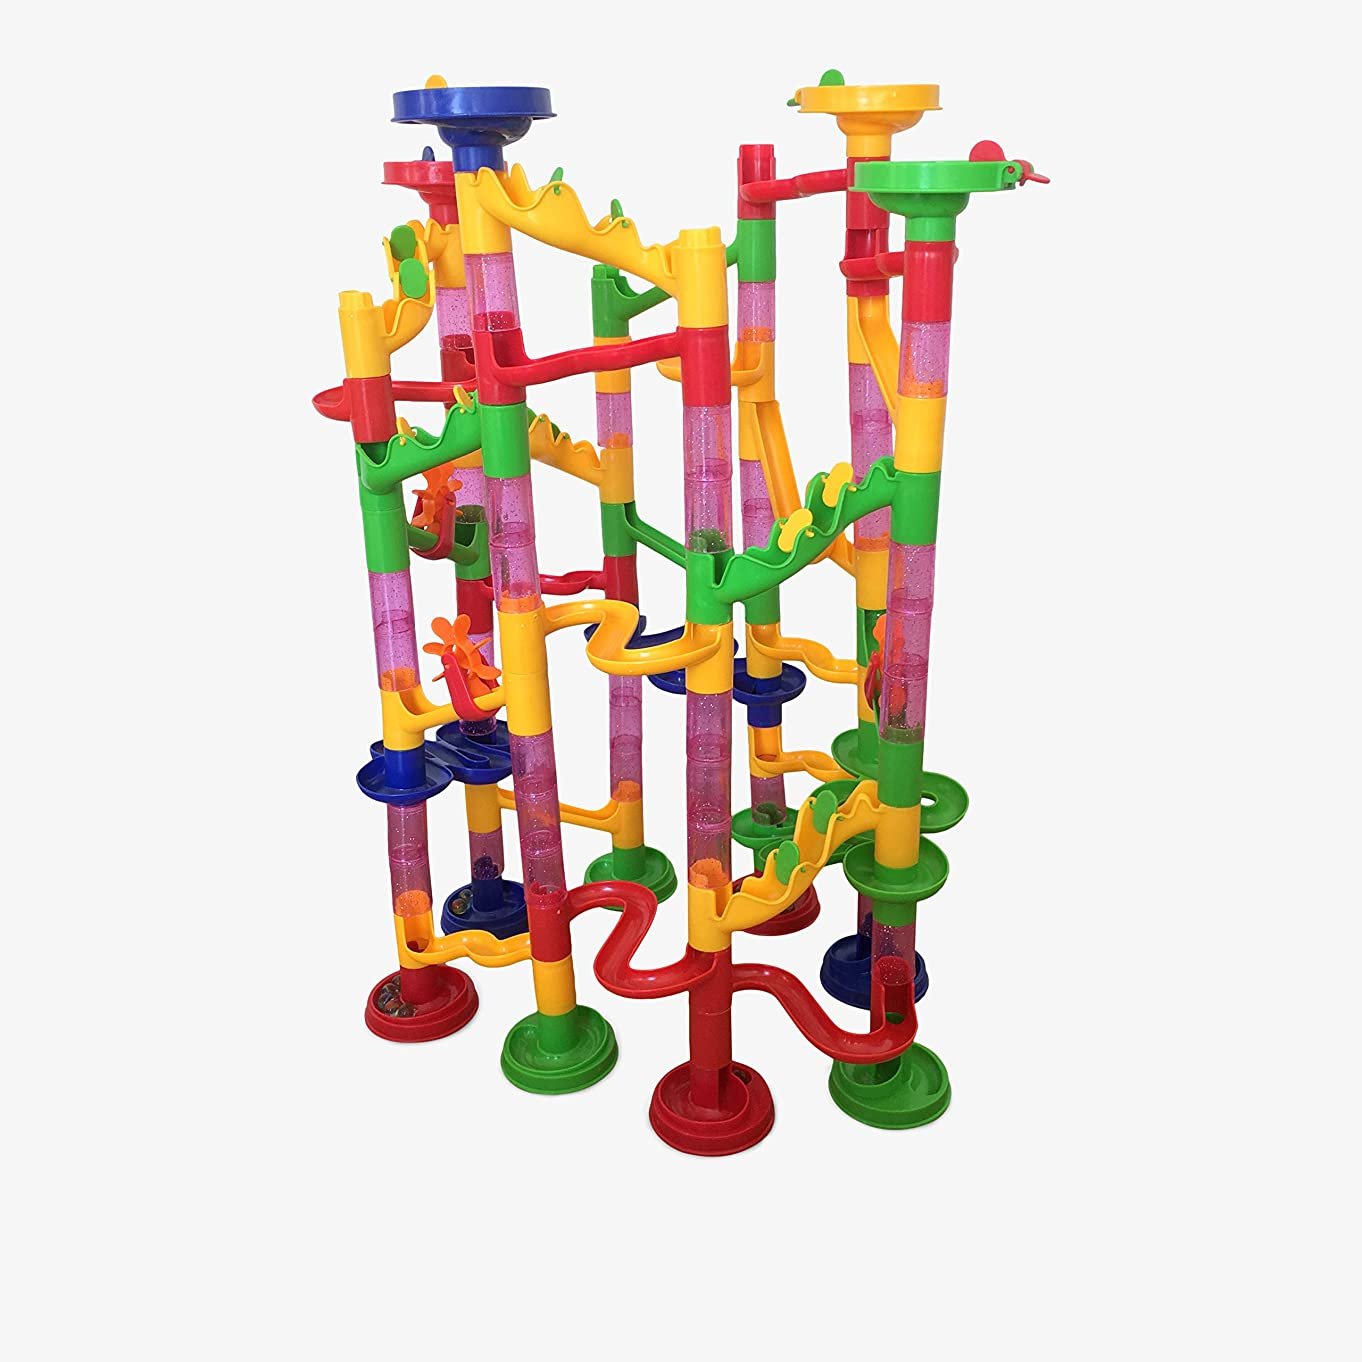 Bloxberry Marble Run deluxe 115 pieces